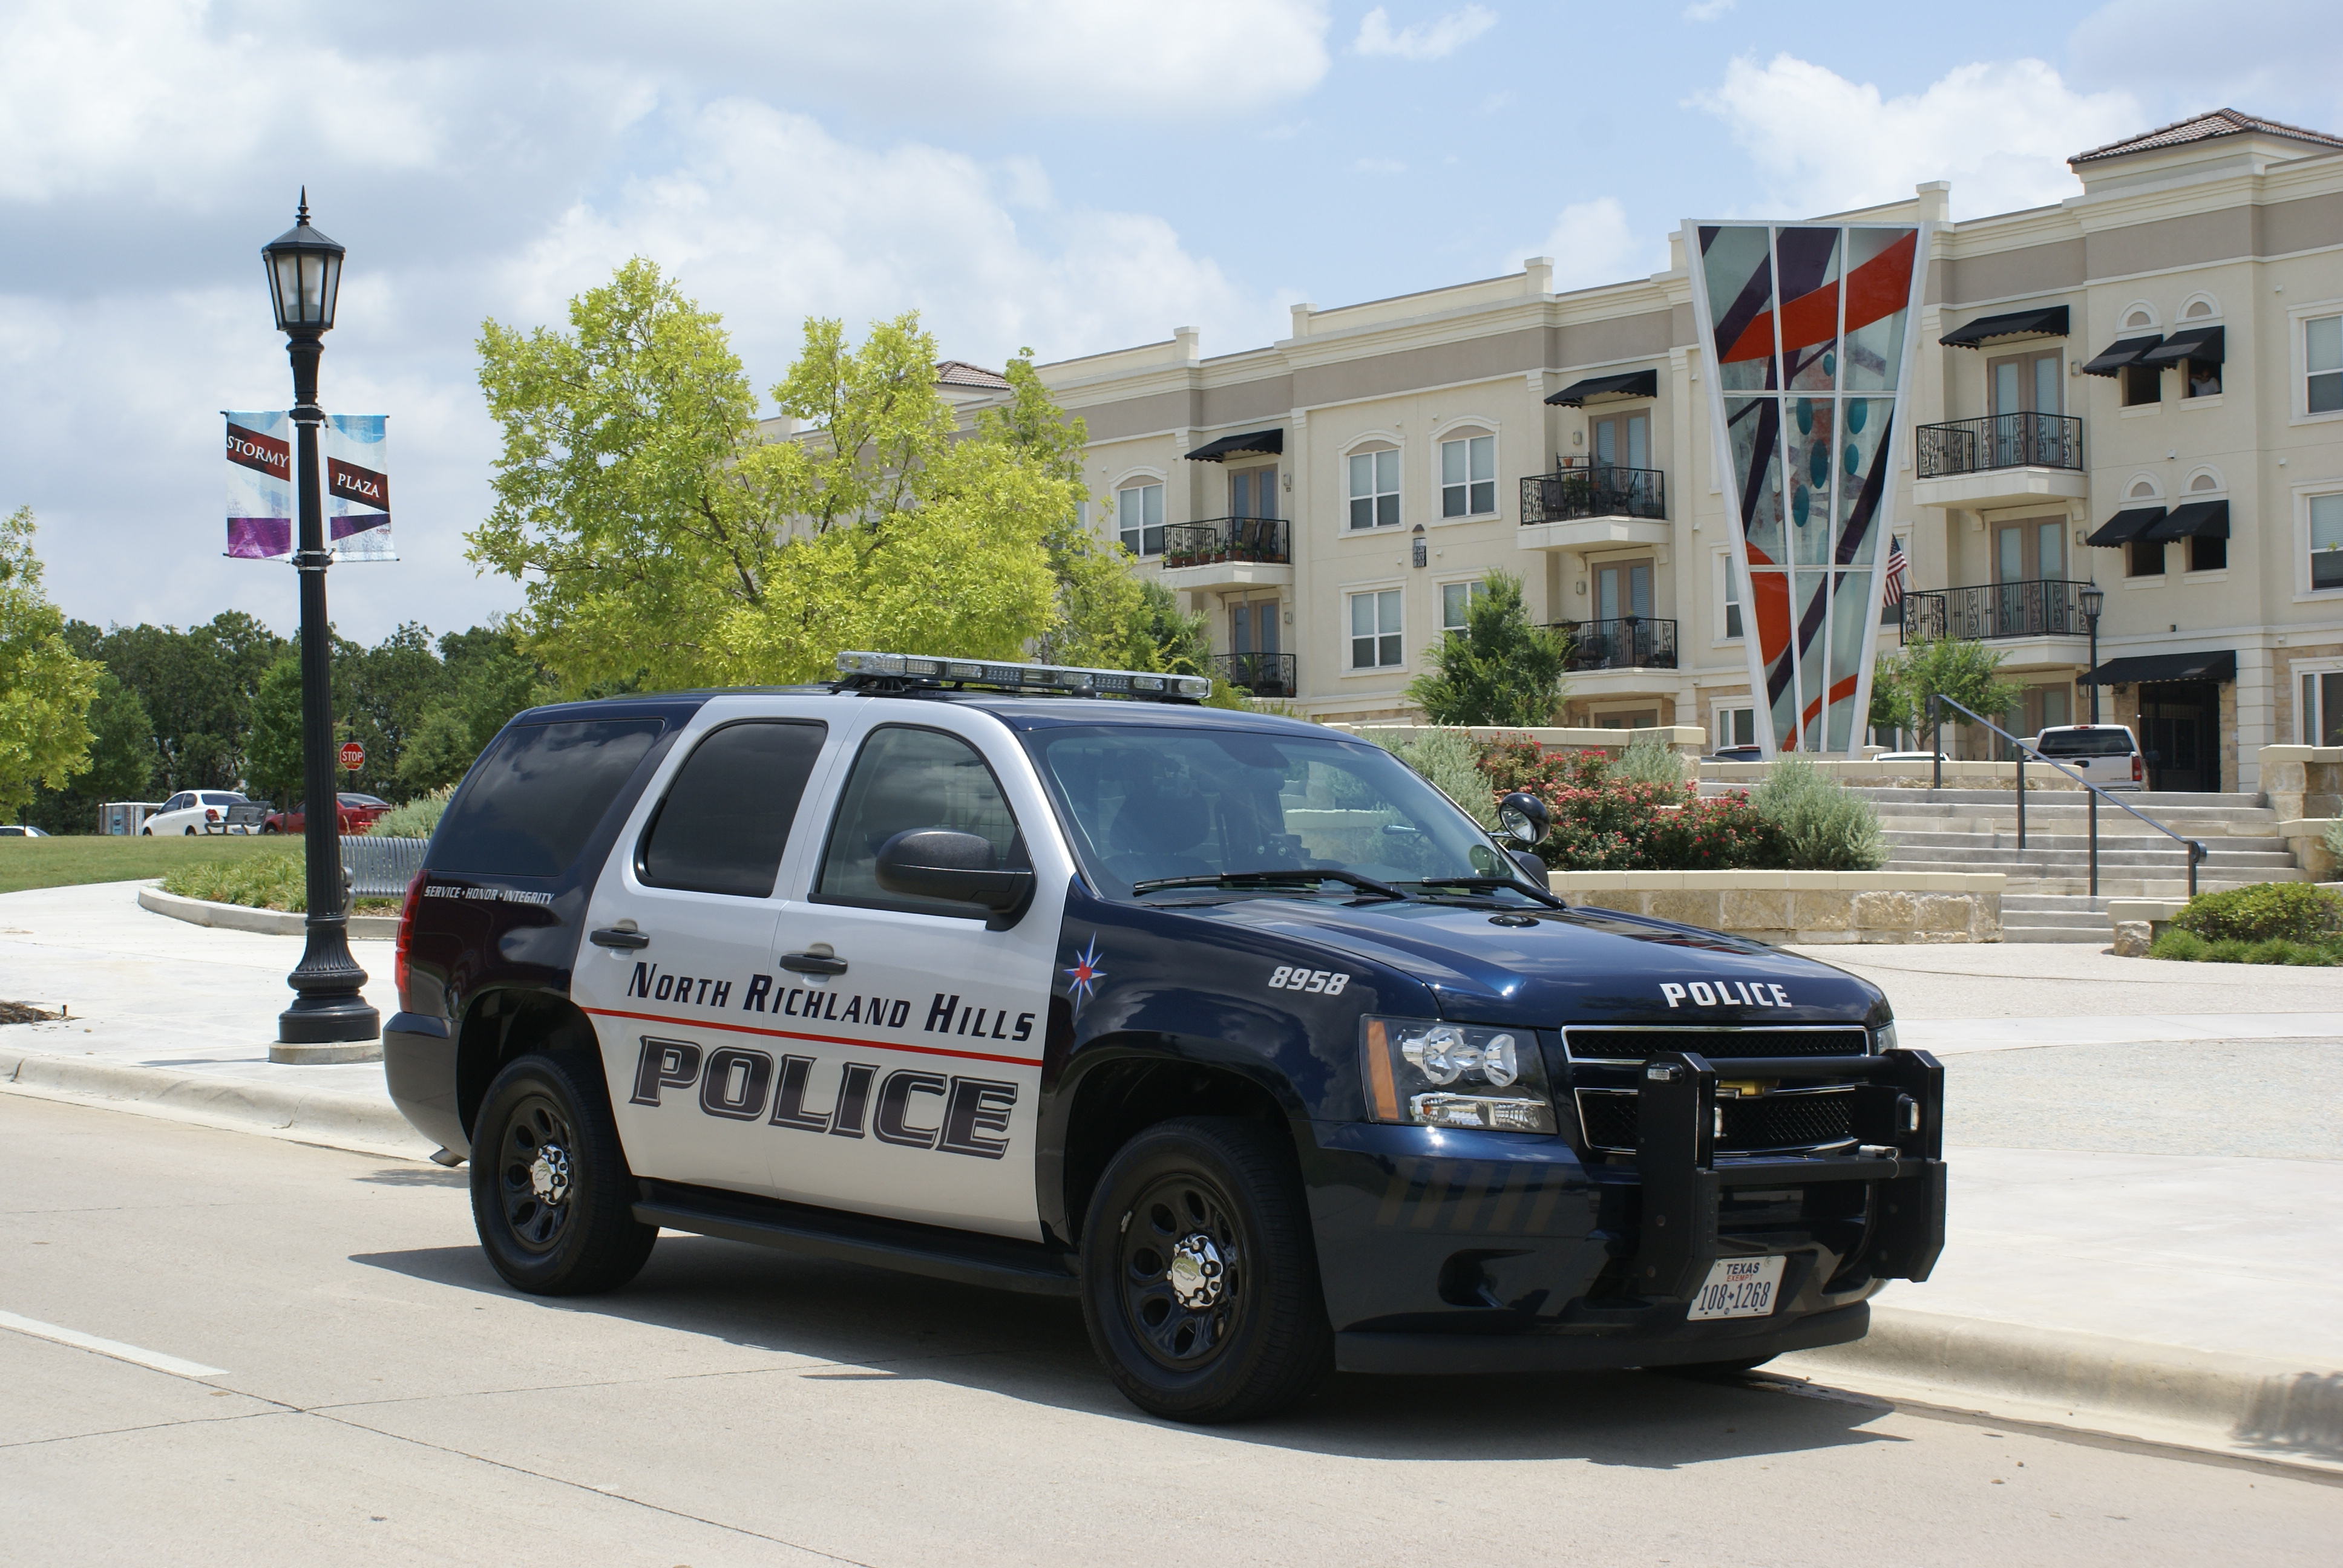 Police Department | North Richland Hills, TX - Official Website